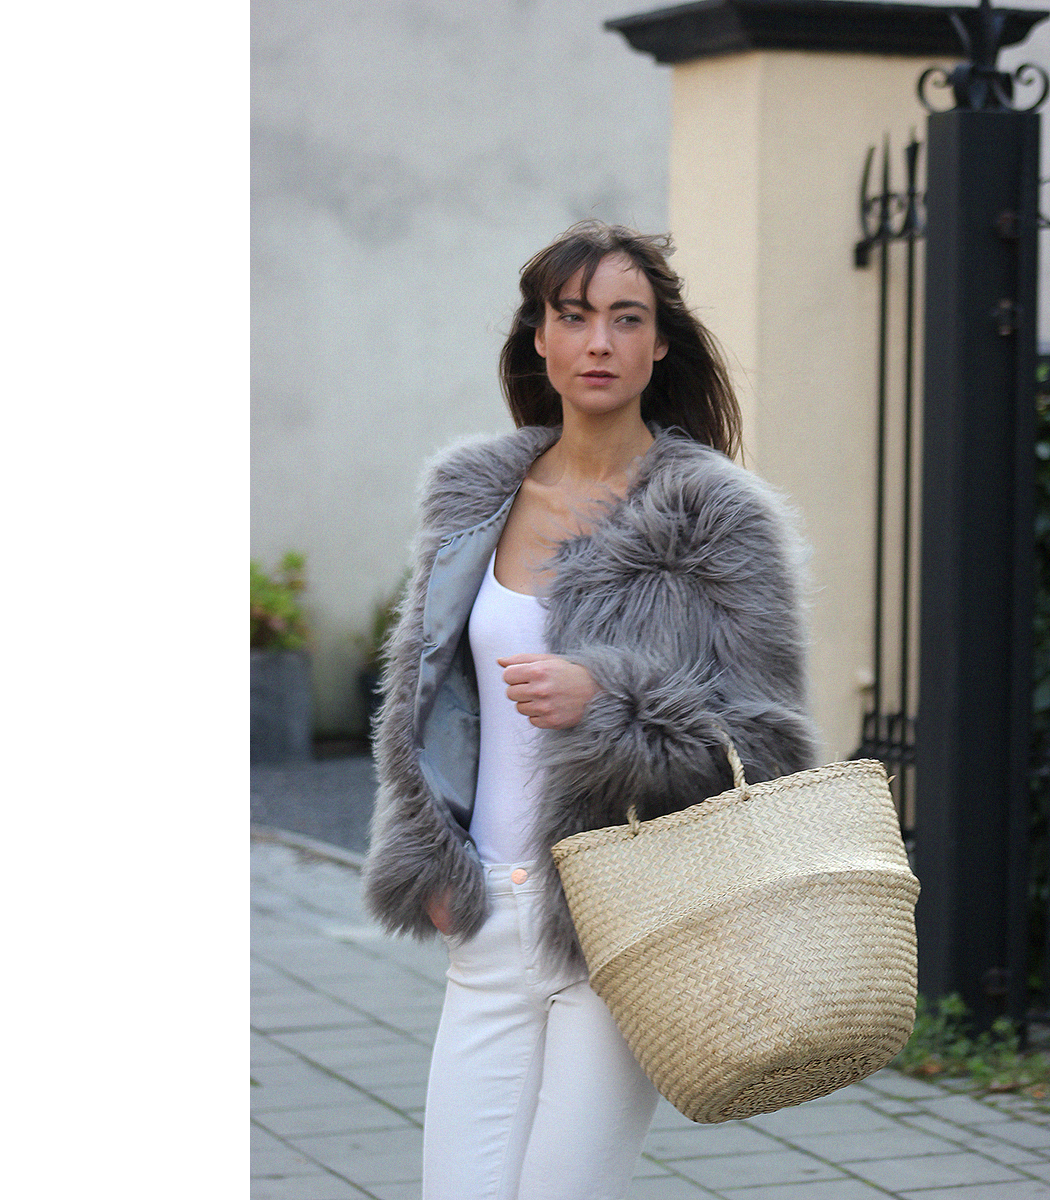 Unreal Fur coat, Zara top, AYR denim, Gucci loafers - Modedamour 6.png